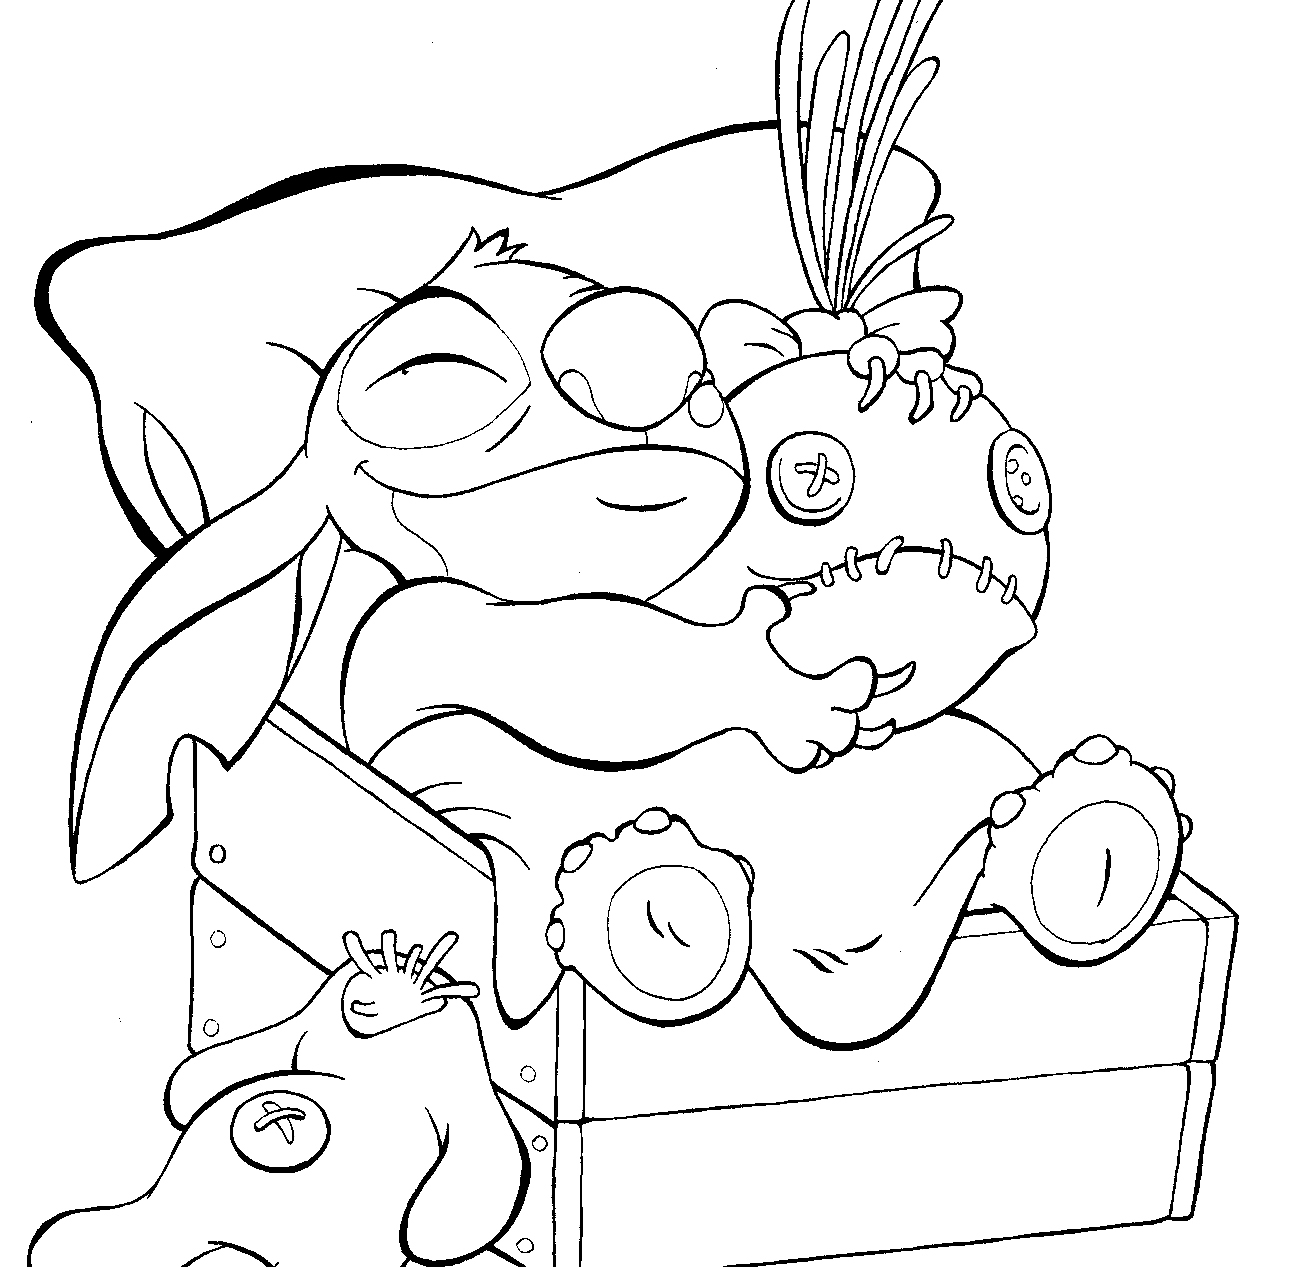 stitch coloring pages - lilo stitch